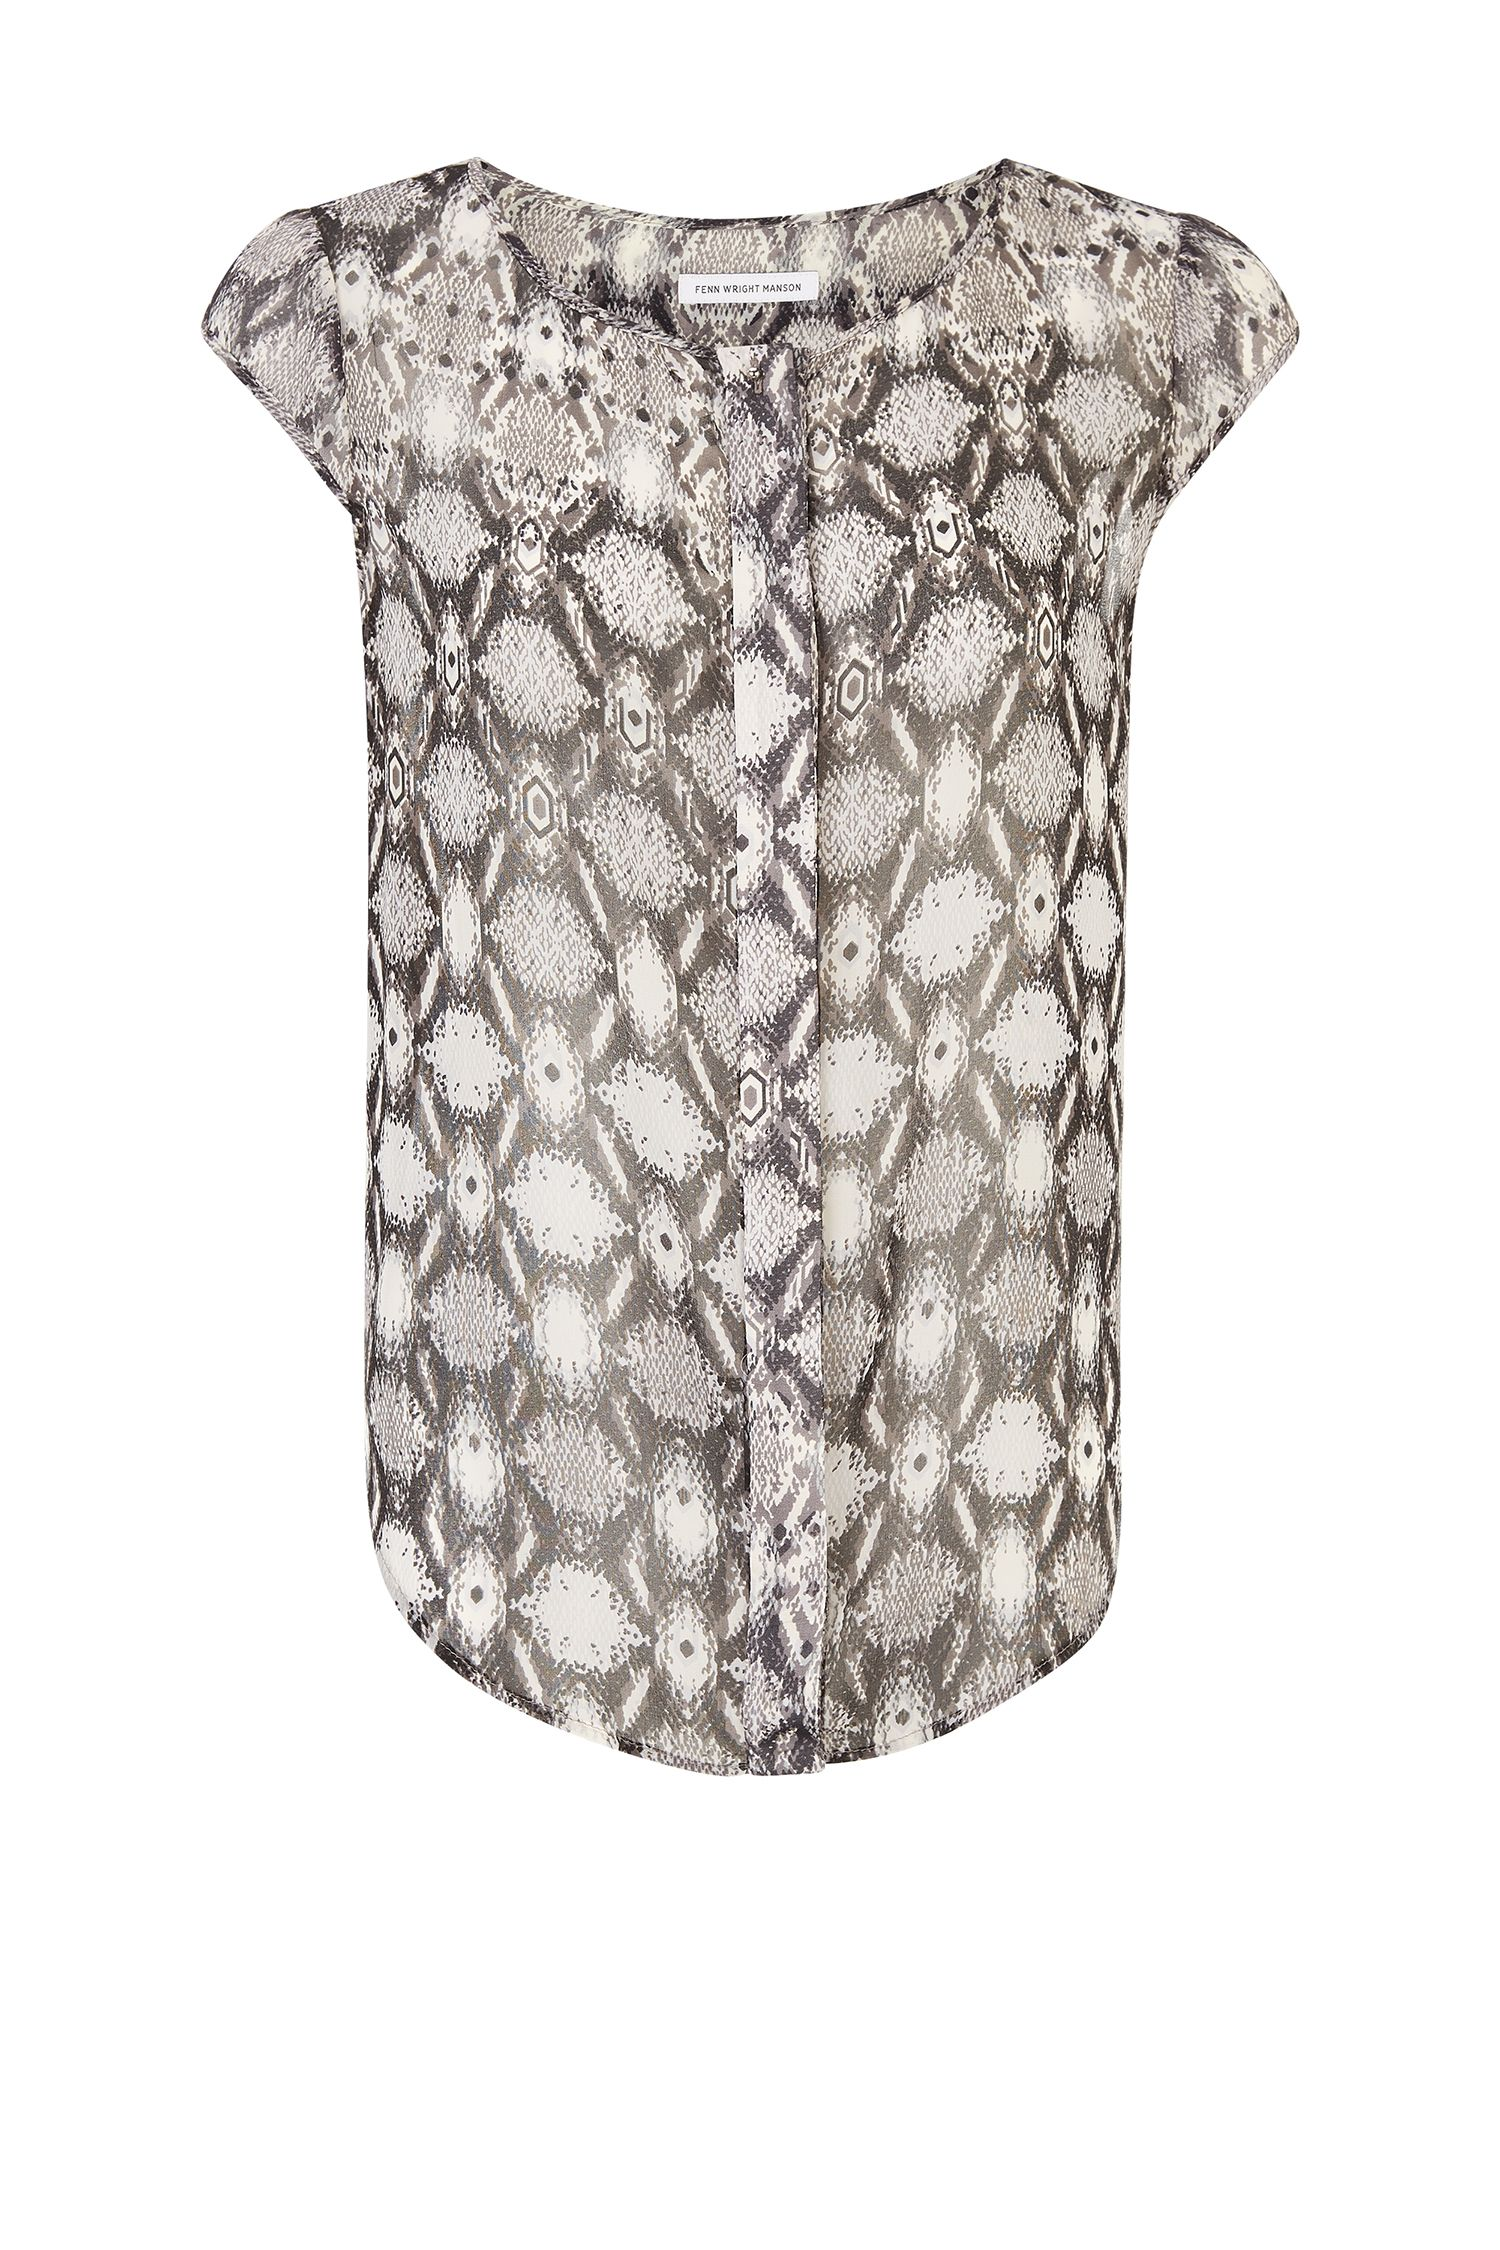 Fenn Wright Manson Logan Top, Grey Marl